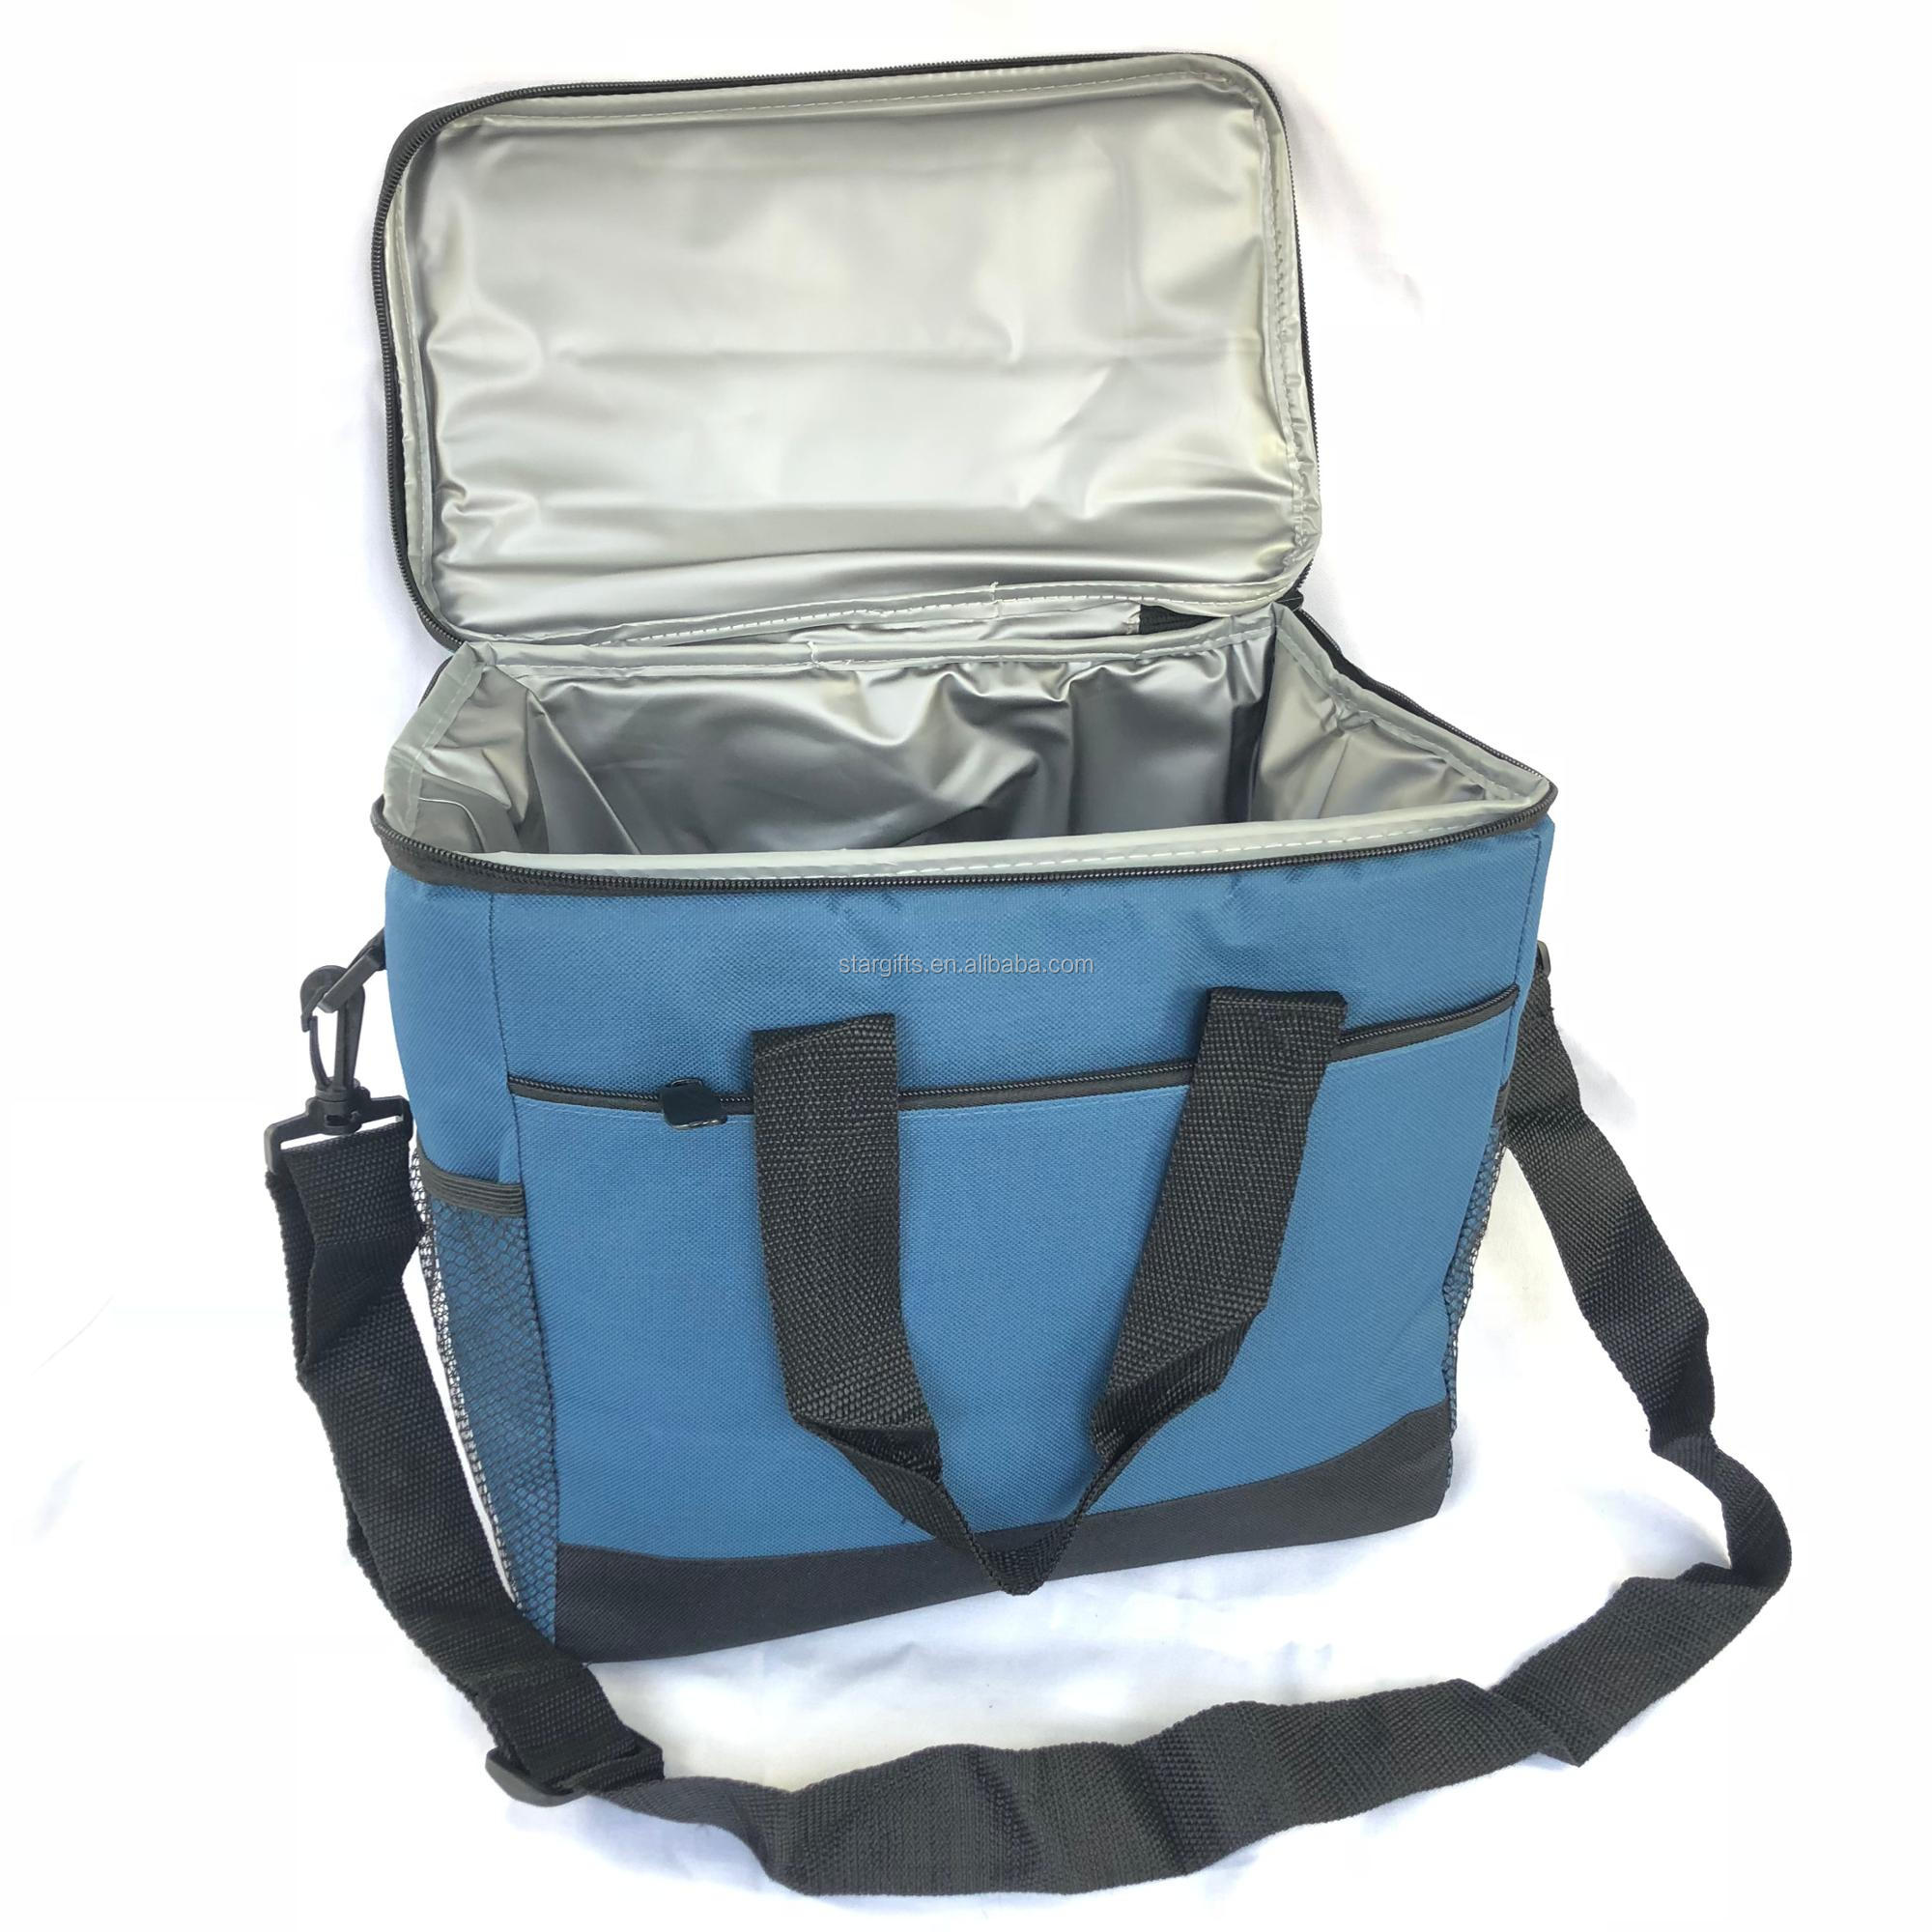 Heavy Duty Nylon Extra Large Capacity Insulation Commercial Quality Perfect Food Warmer Cooler Bags